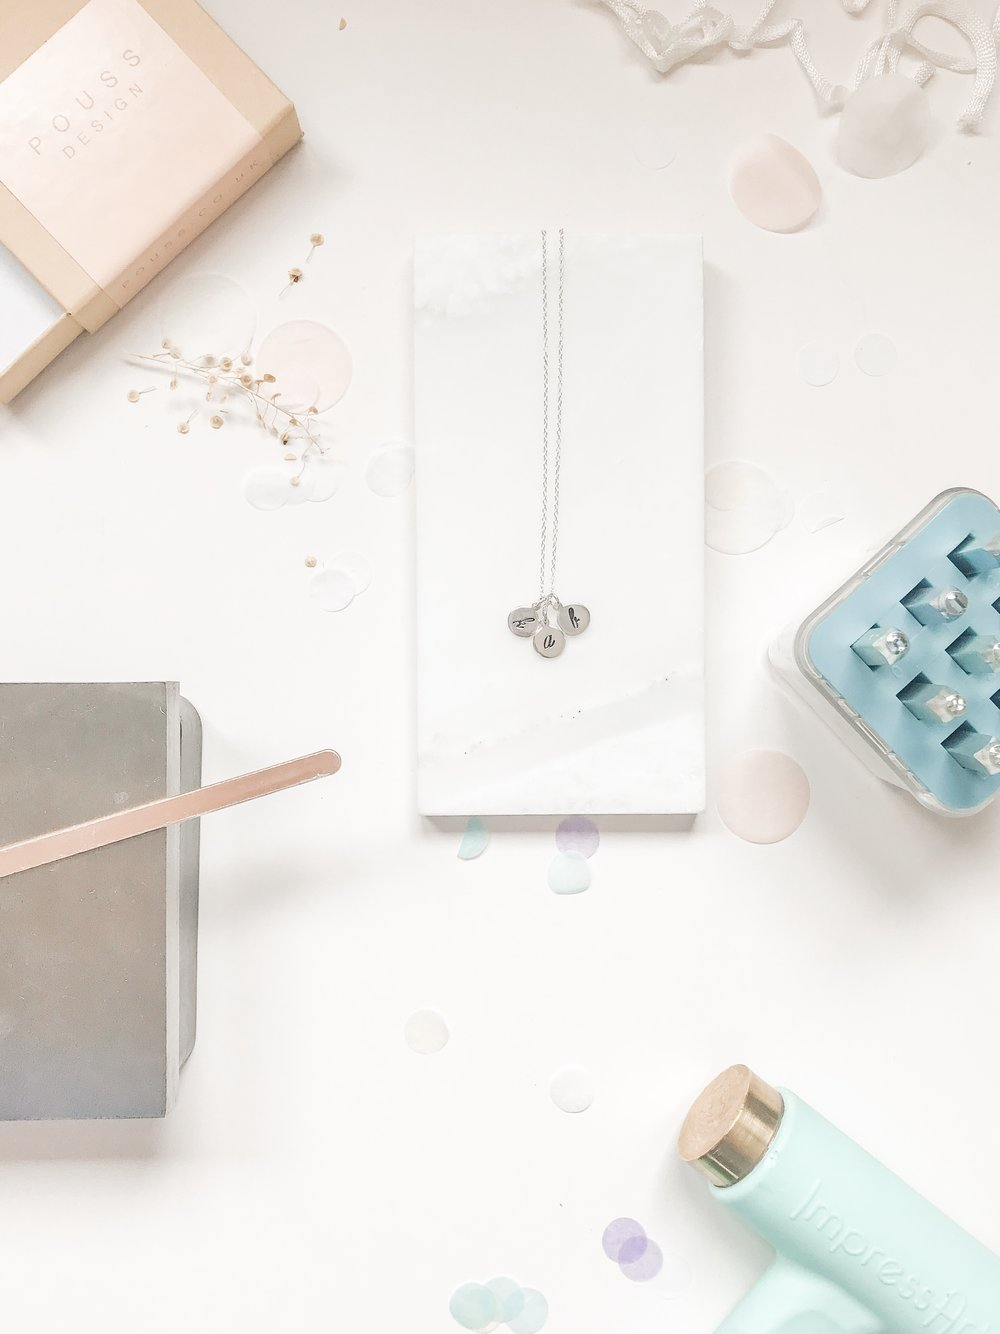 Make your own personalised initial necklace in my workshop this December 2018